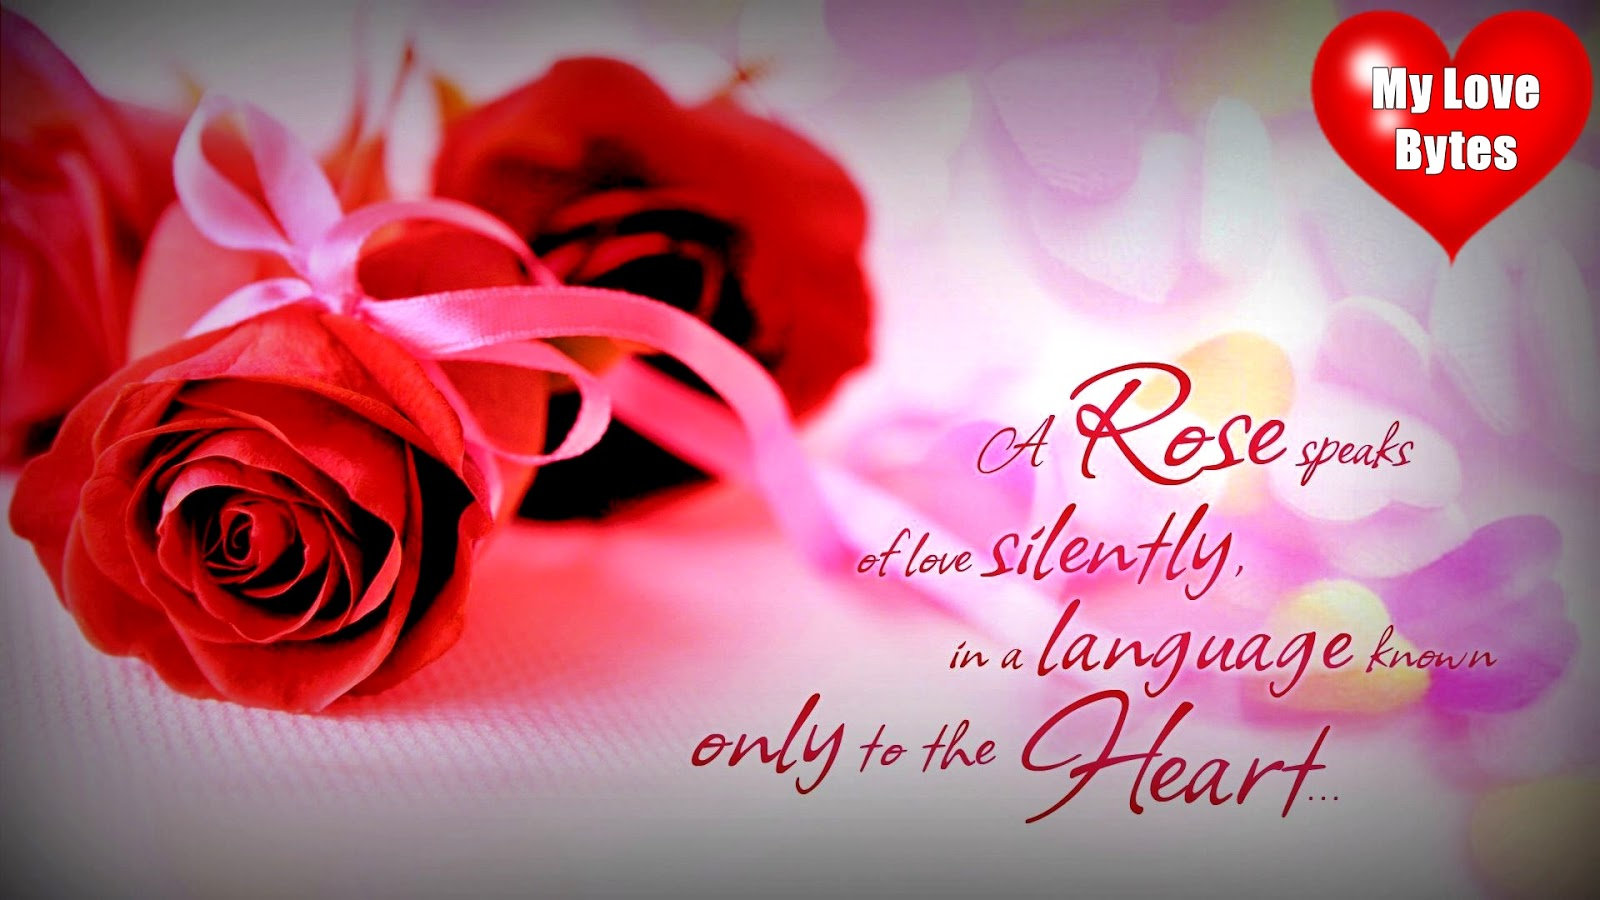 Love Hd Wallpaper Full Size, Romantic Roses Hd Images, - Good Morning Images Hd For Lovers - HD Wallpaper